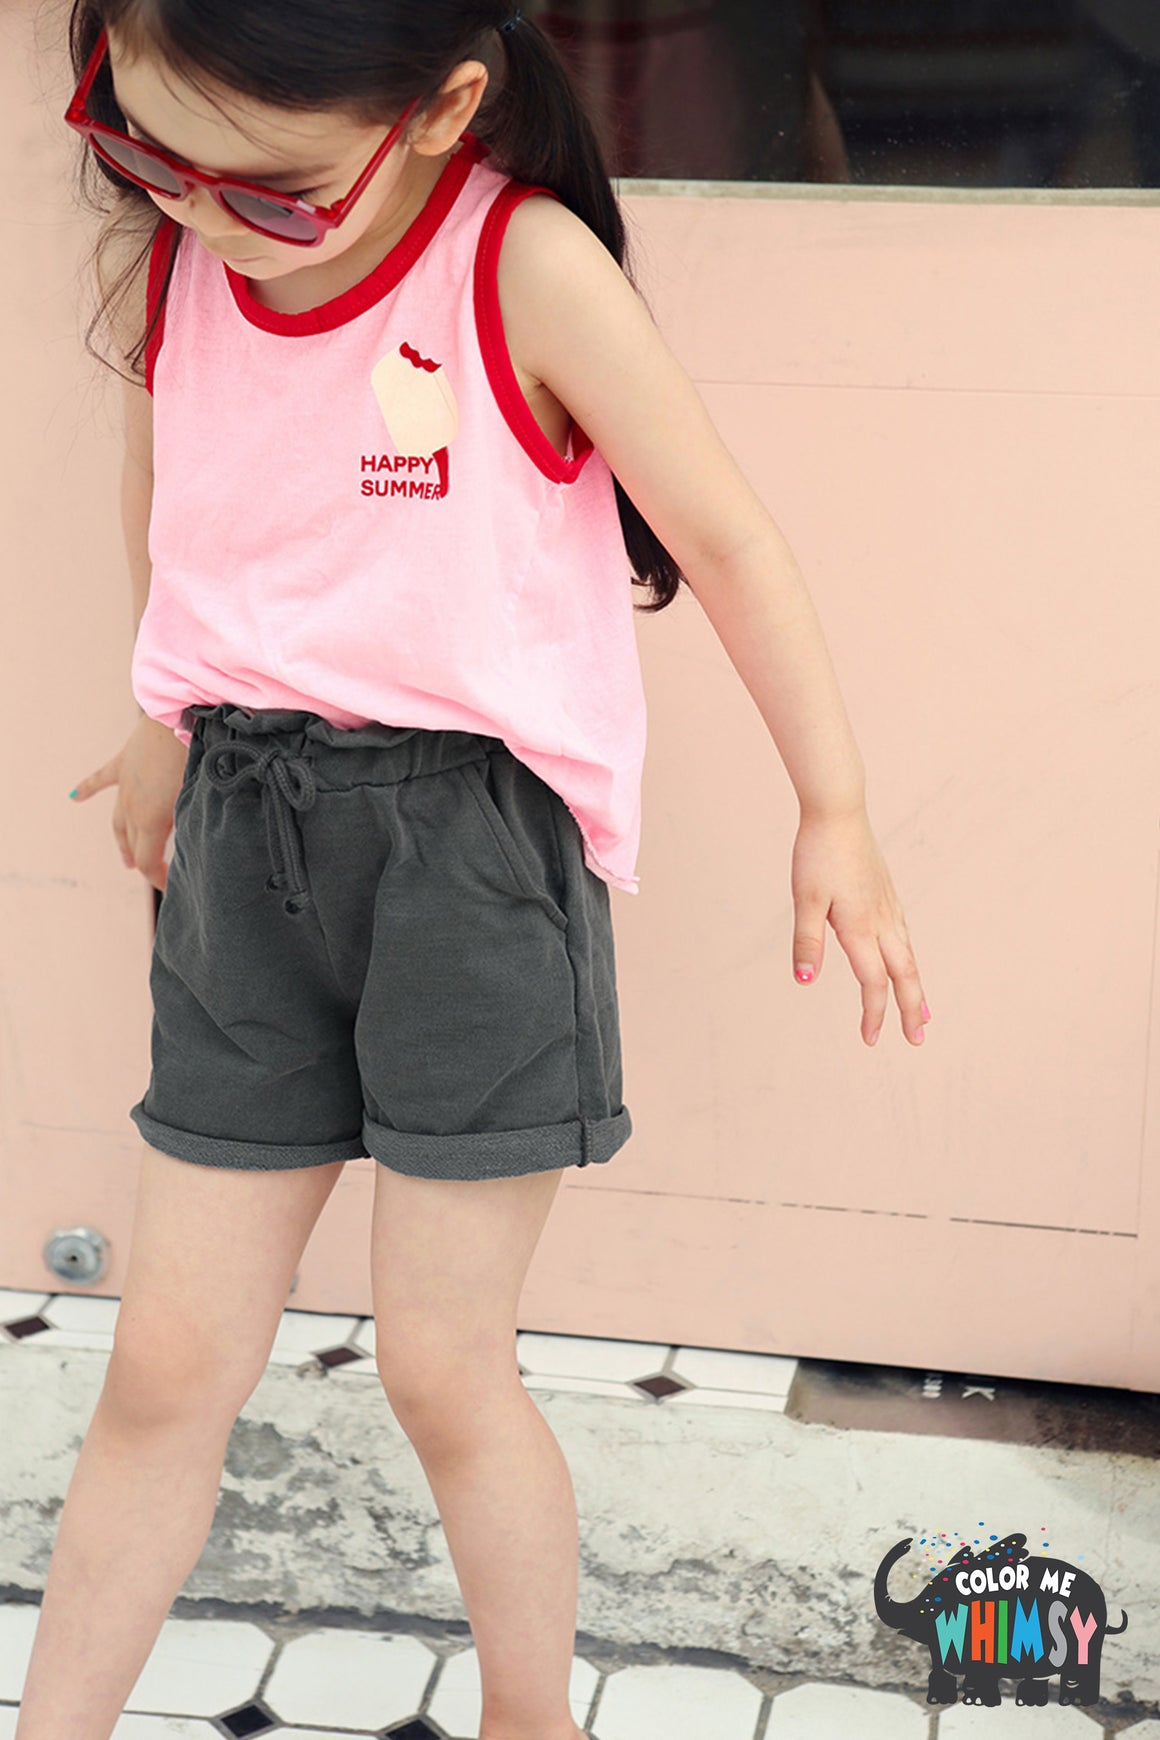 Peach and Cream Creamy Sleeveless-T at Color Me WHIMSY Hip Kid's Fashion Ethically Made in South Korea